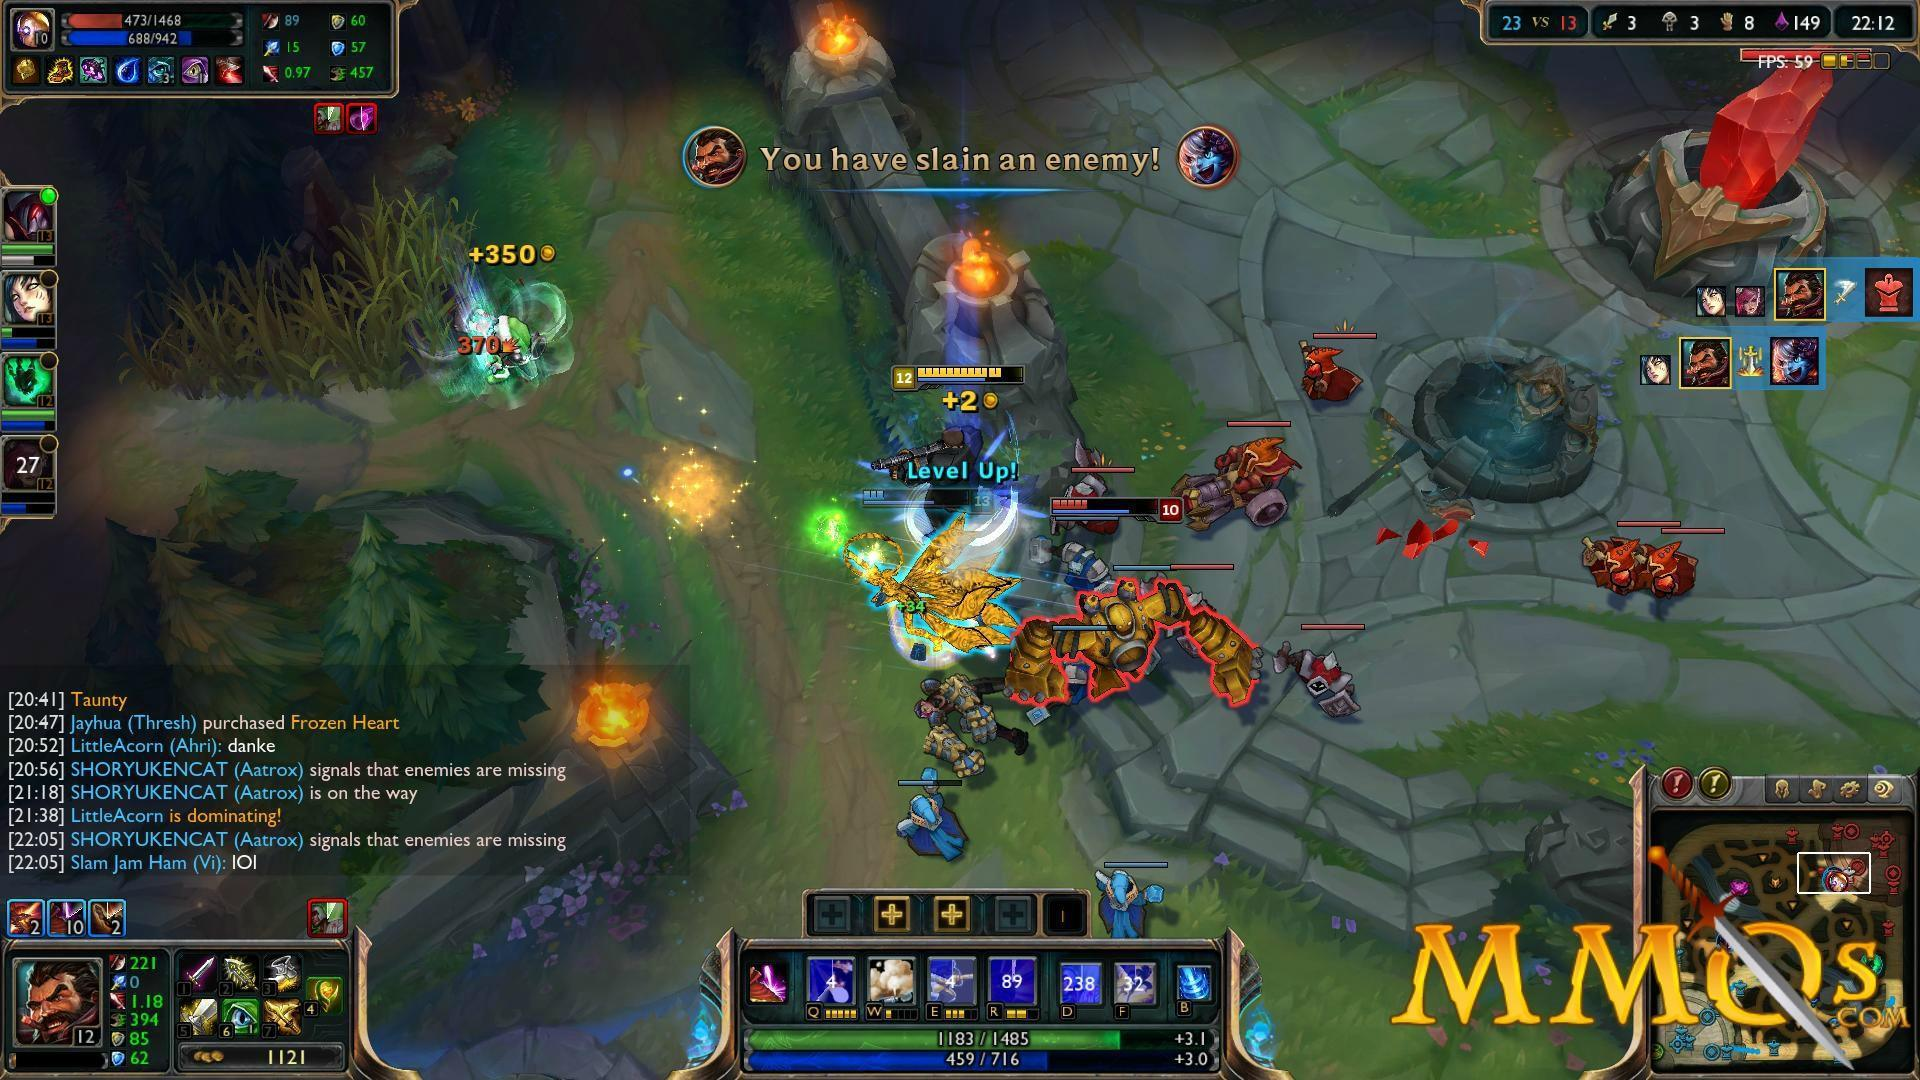 league of legends multiplayer